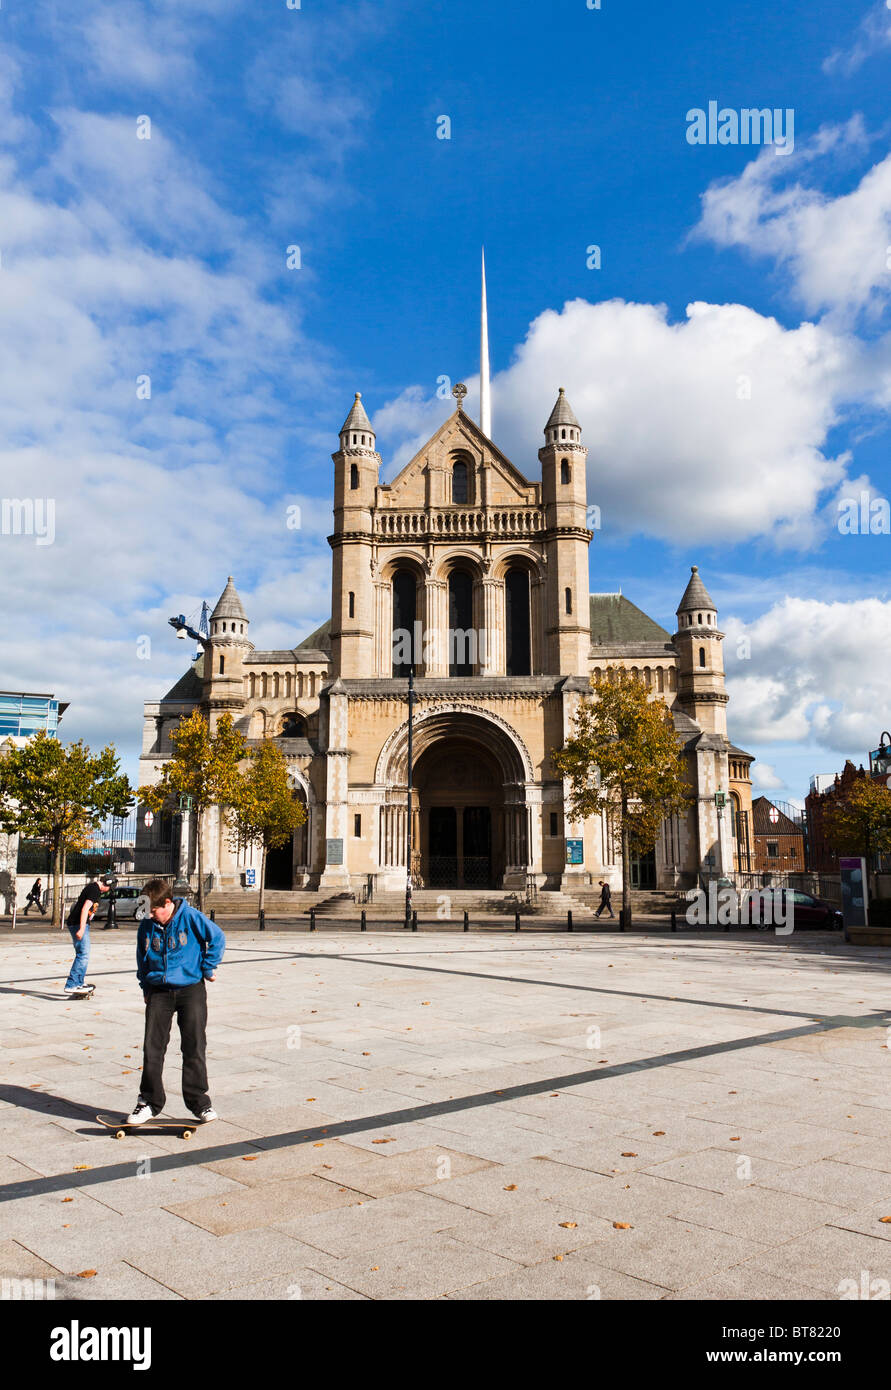 Skateboarders in Writers Square. Belfast Cathedral, St Annes - Stock Image